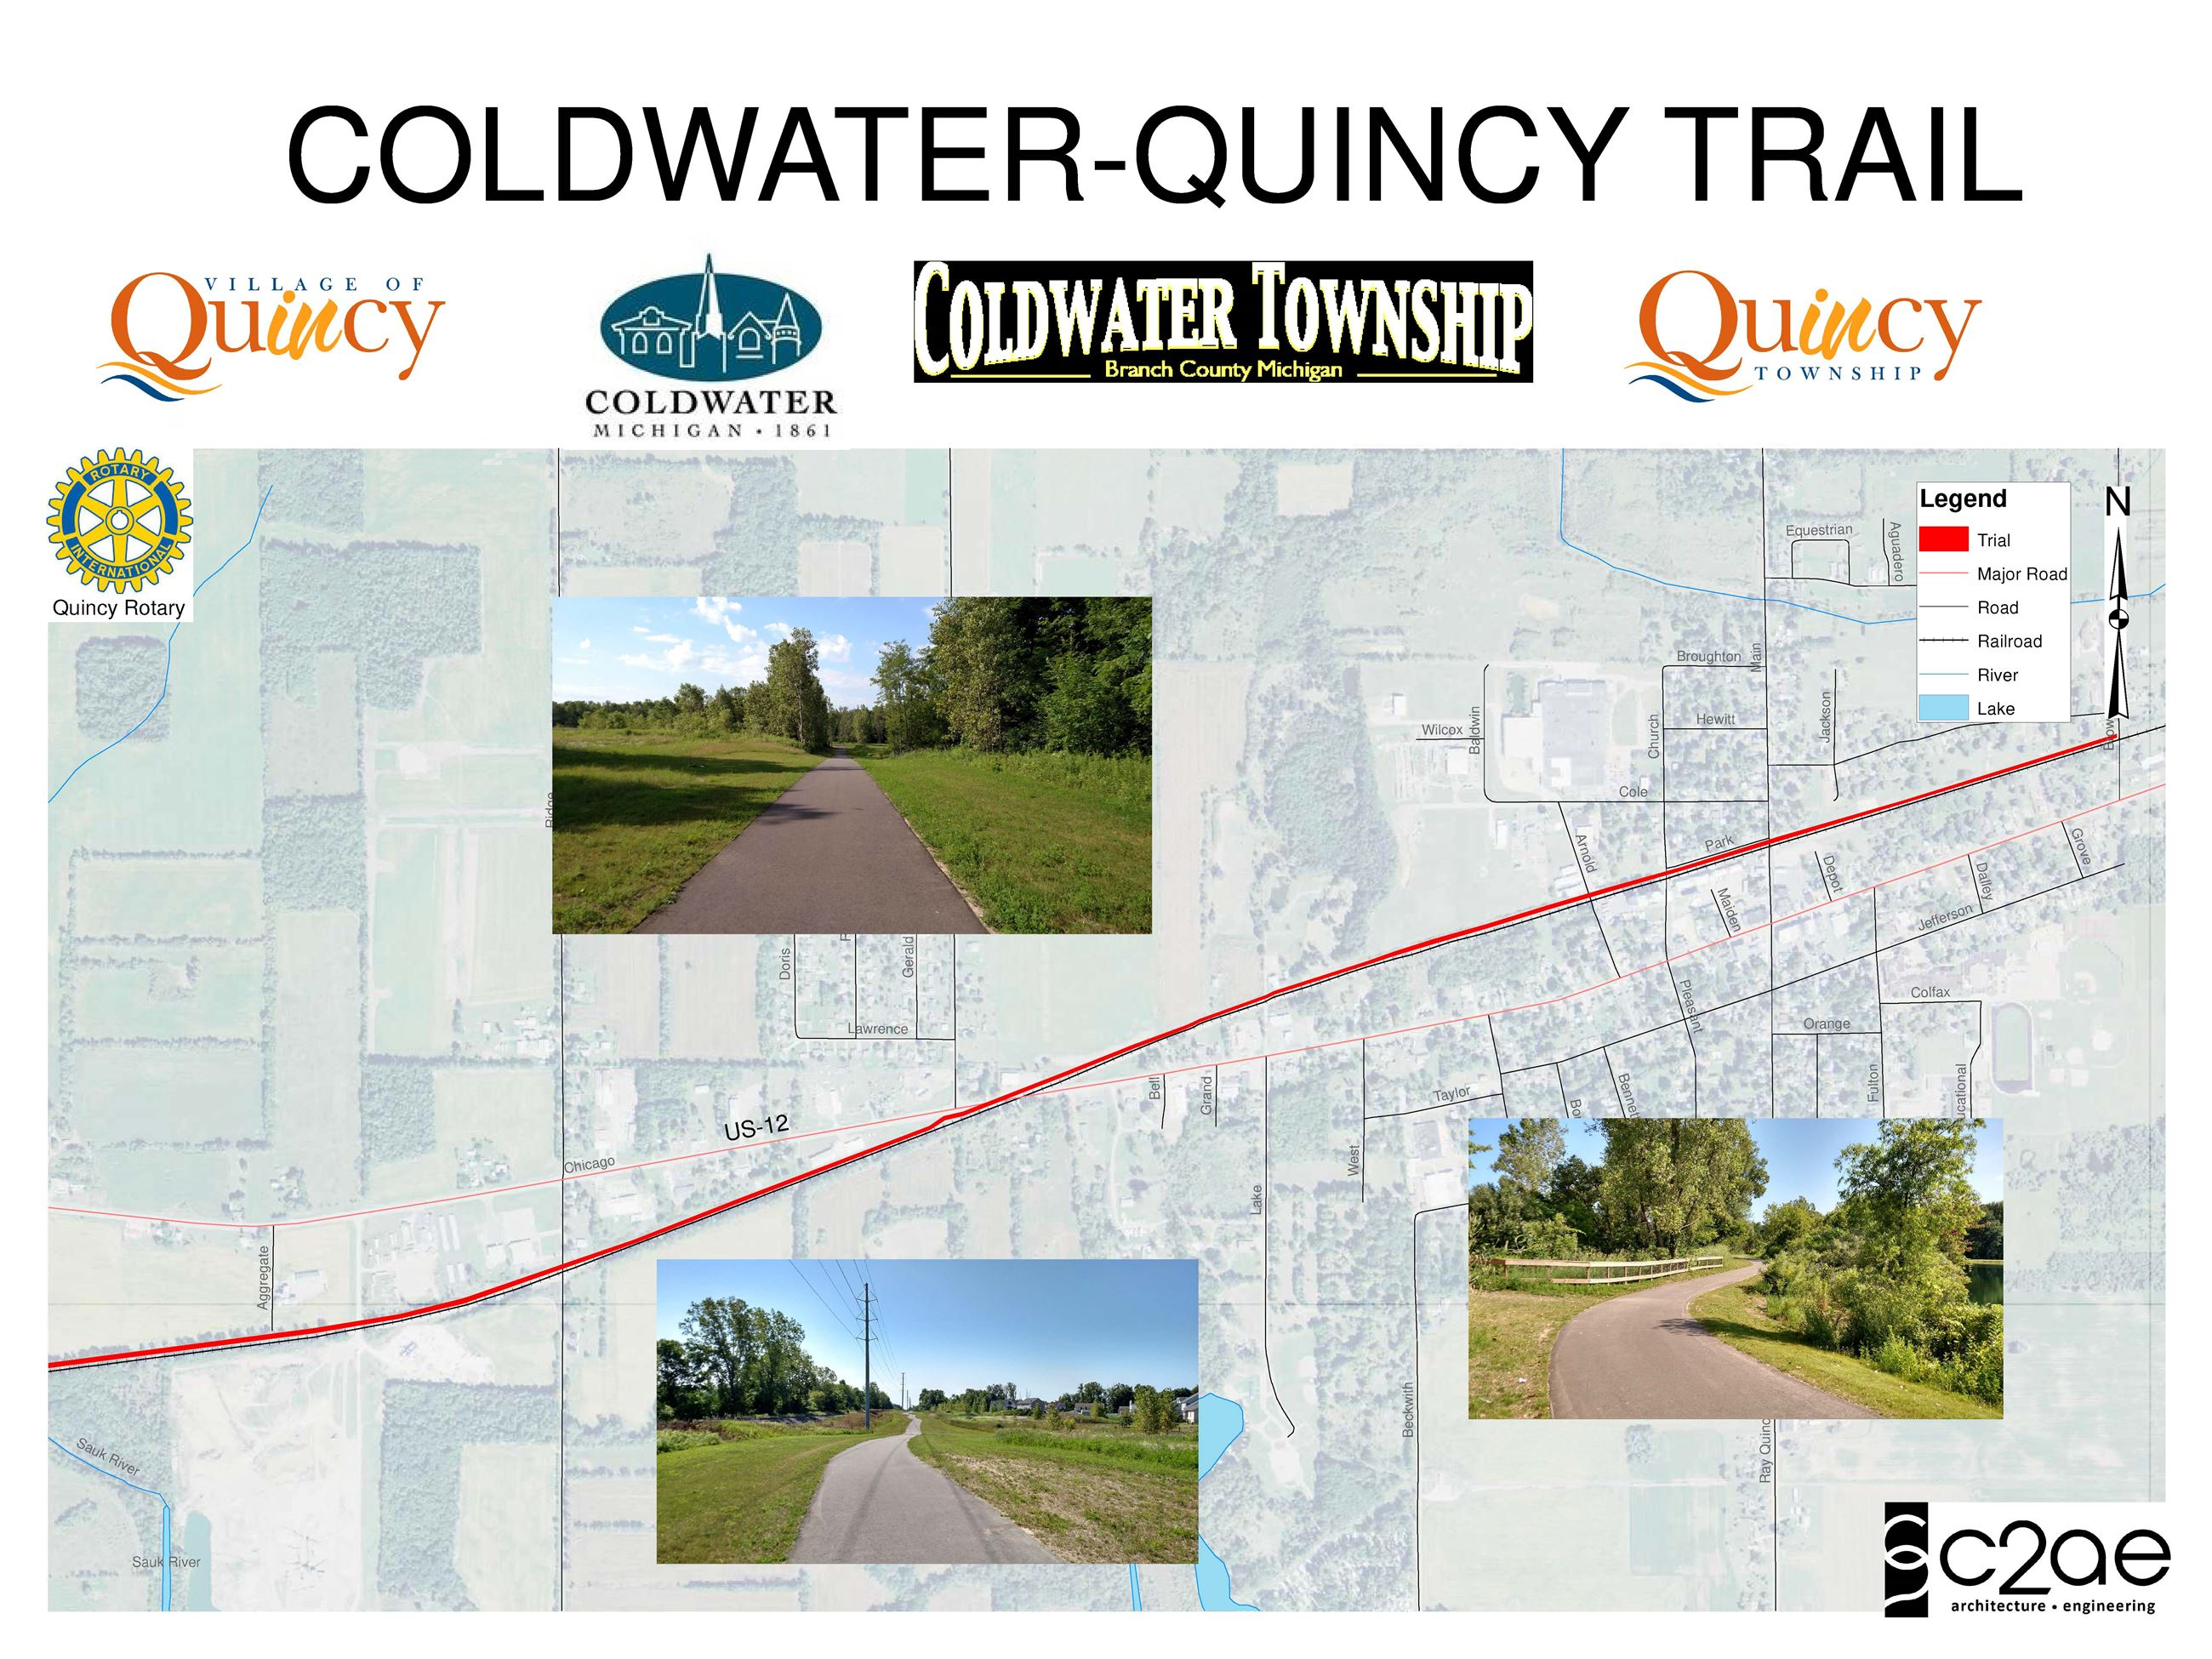 Coldwater-Quincy Trail East